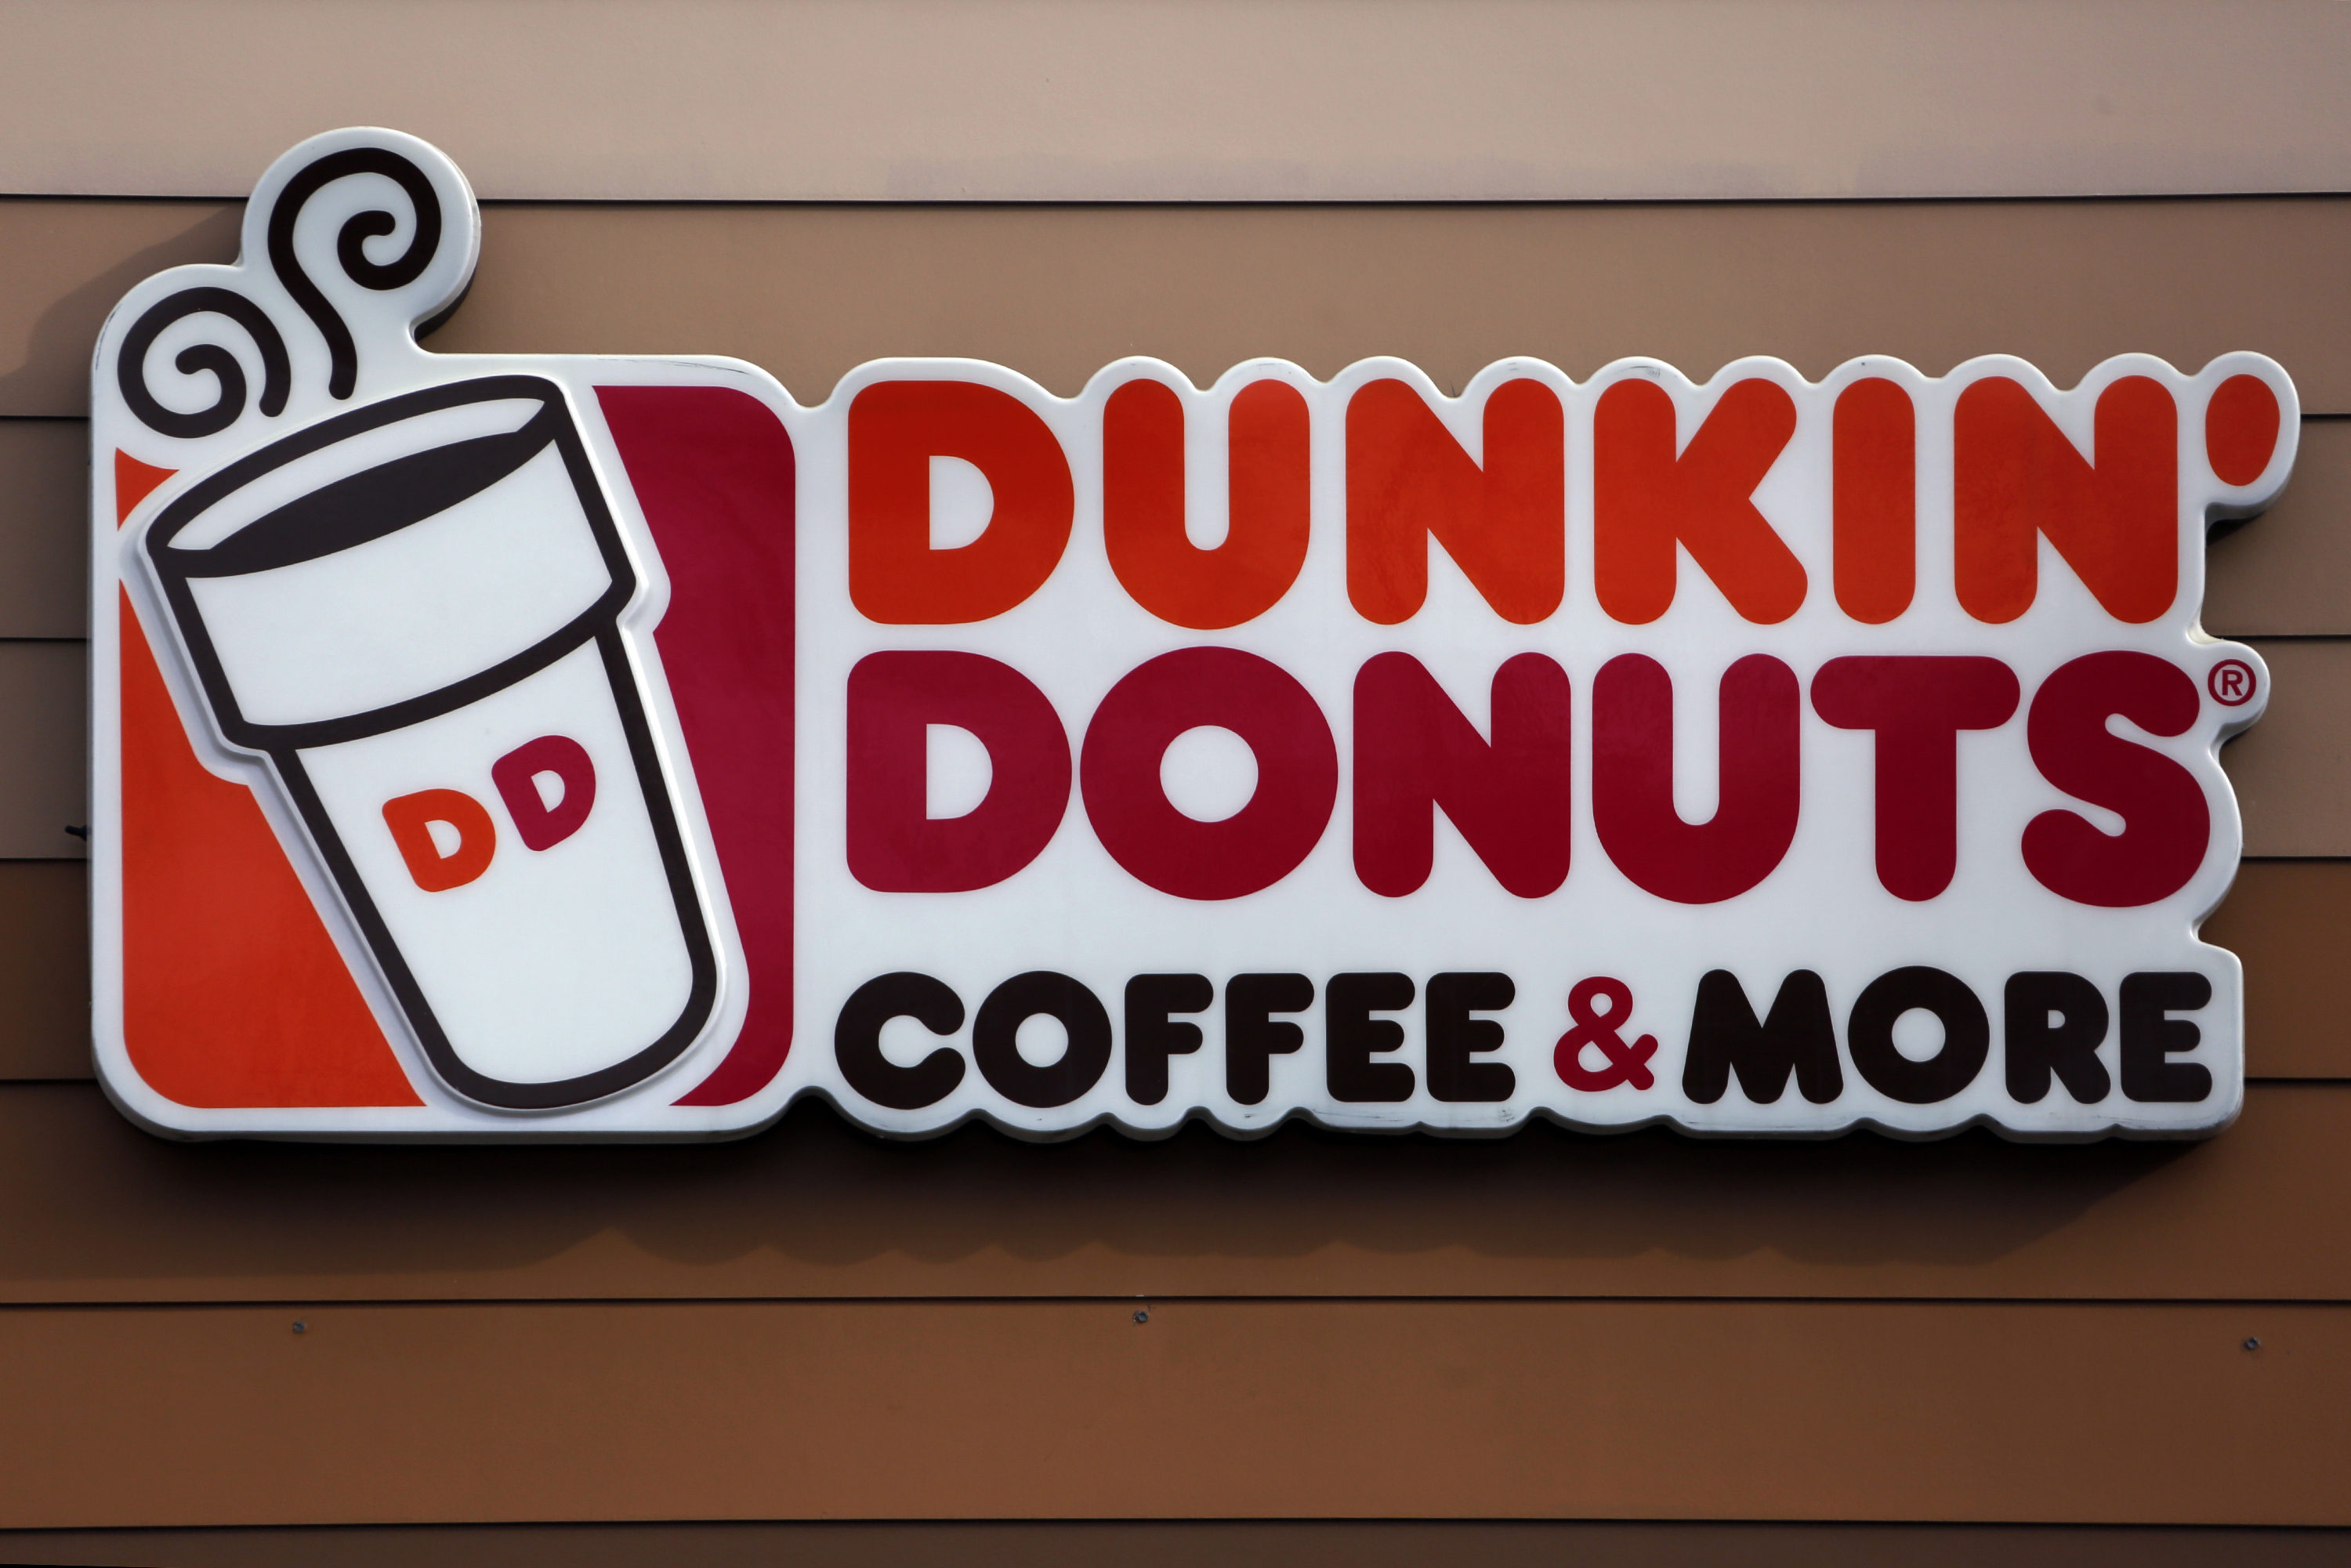 Its Official: Dunkin Donuts Is Now Just...Dunkin